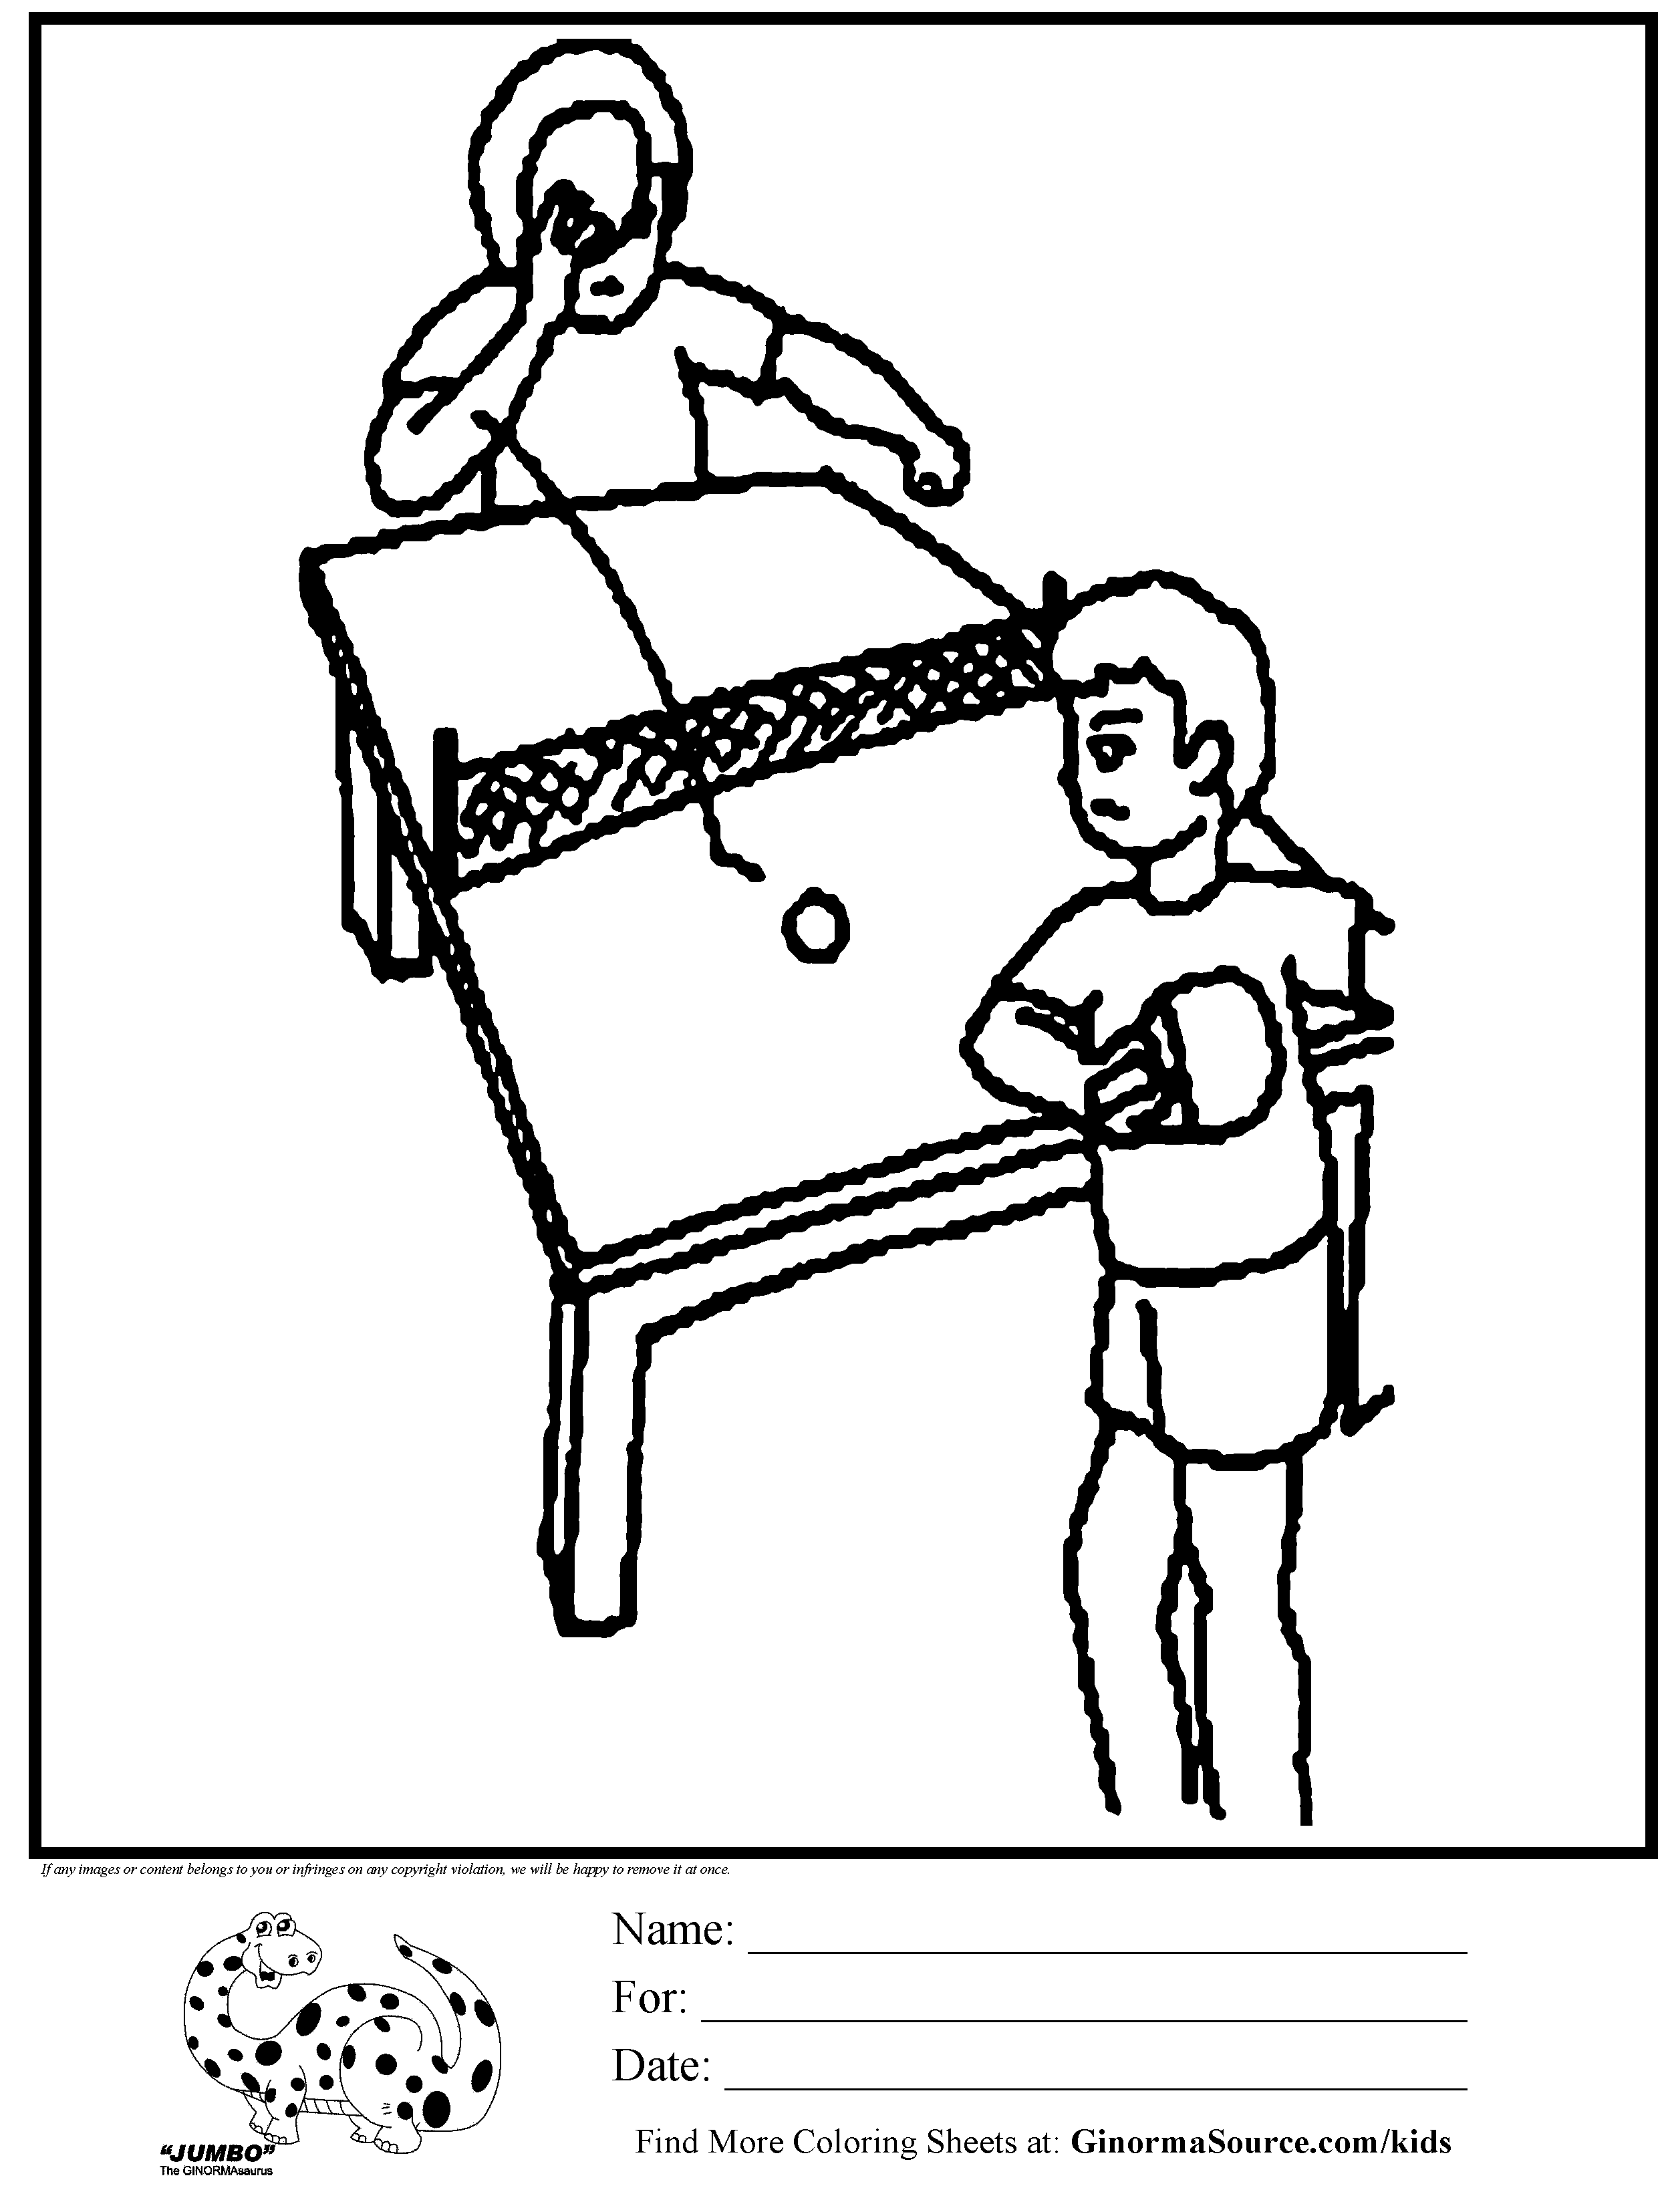 coloring pages of table-tennis,printable,coloring pages